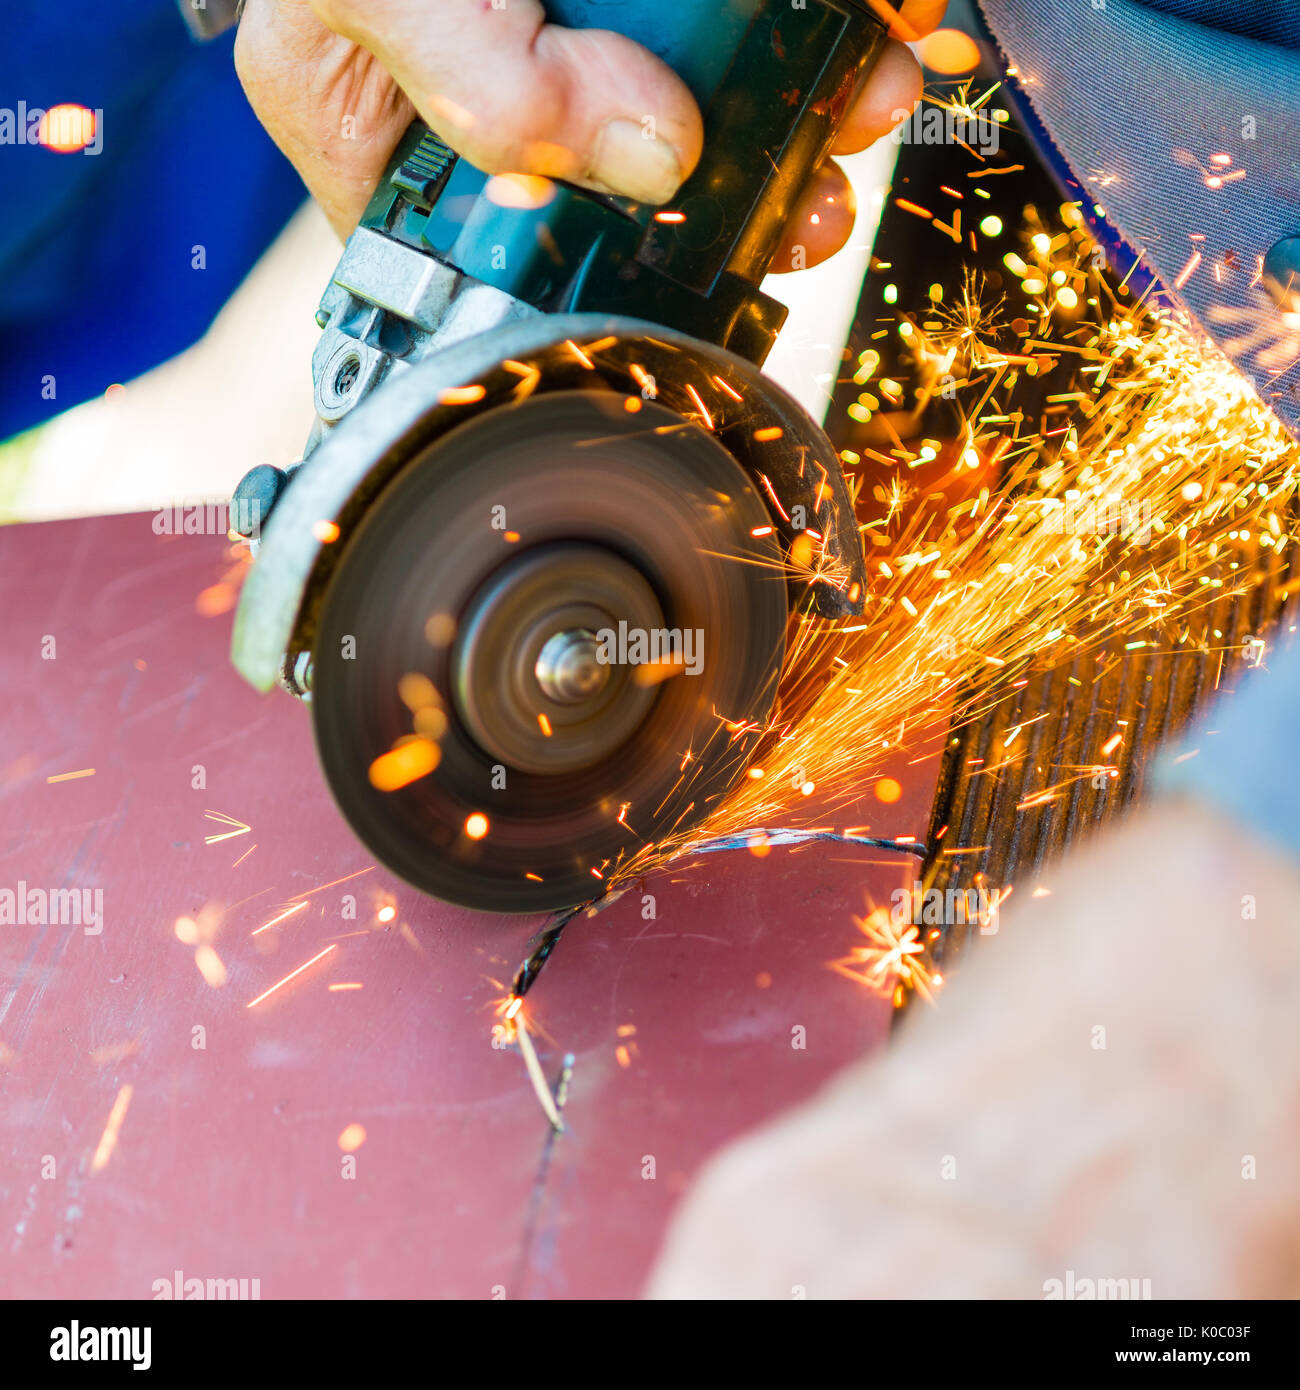 metal sawing with grinder close up - Stock Image